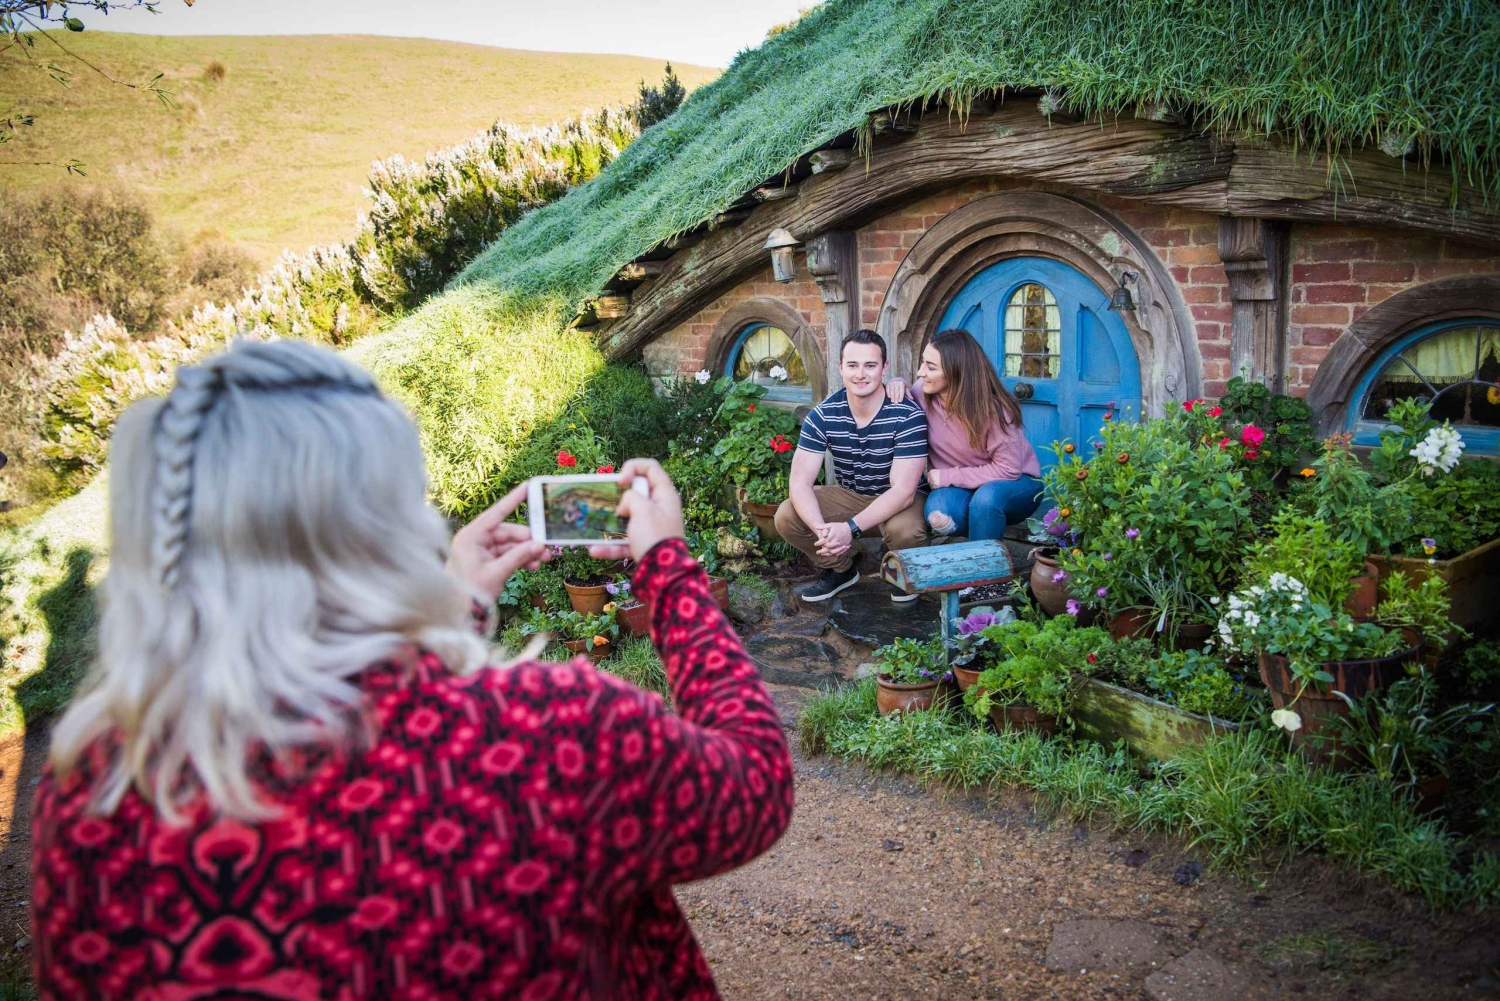 From Hobbiton Movie Set Guided Tour